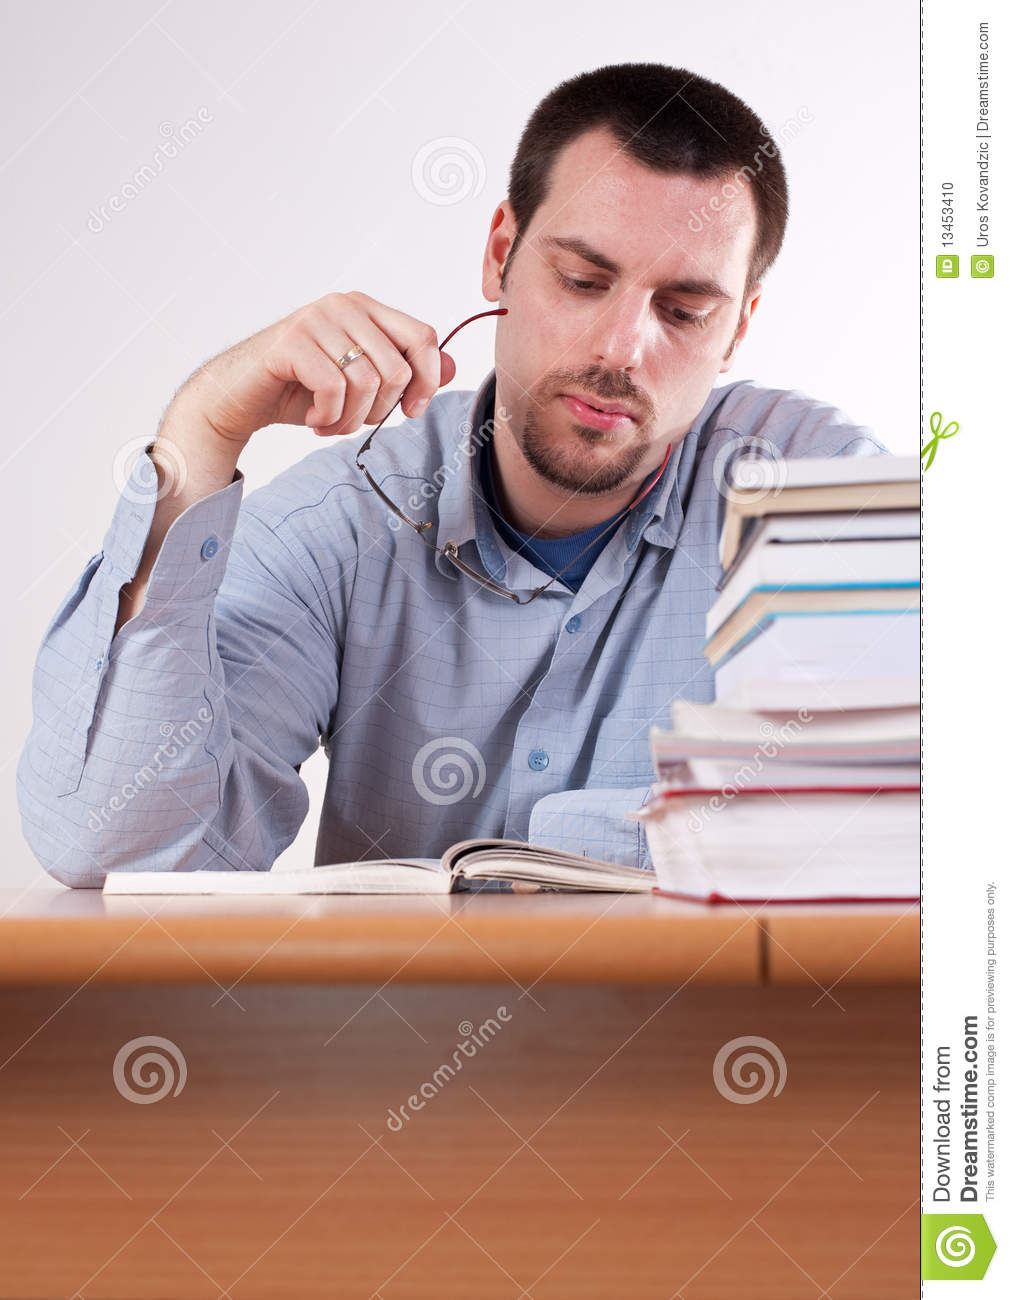 Young Man Reading Book, Learnin On The Table Stock Photo